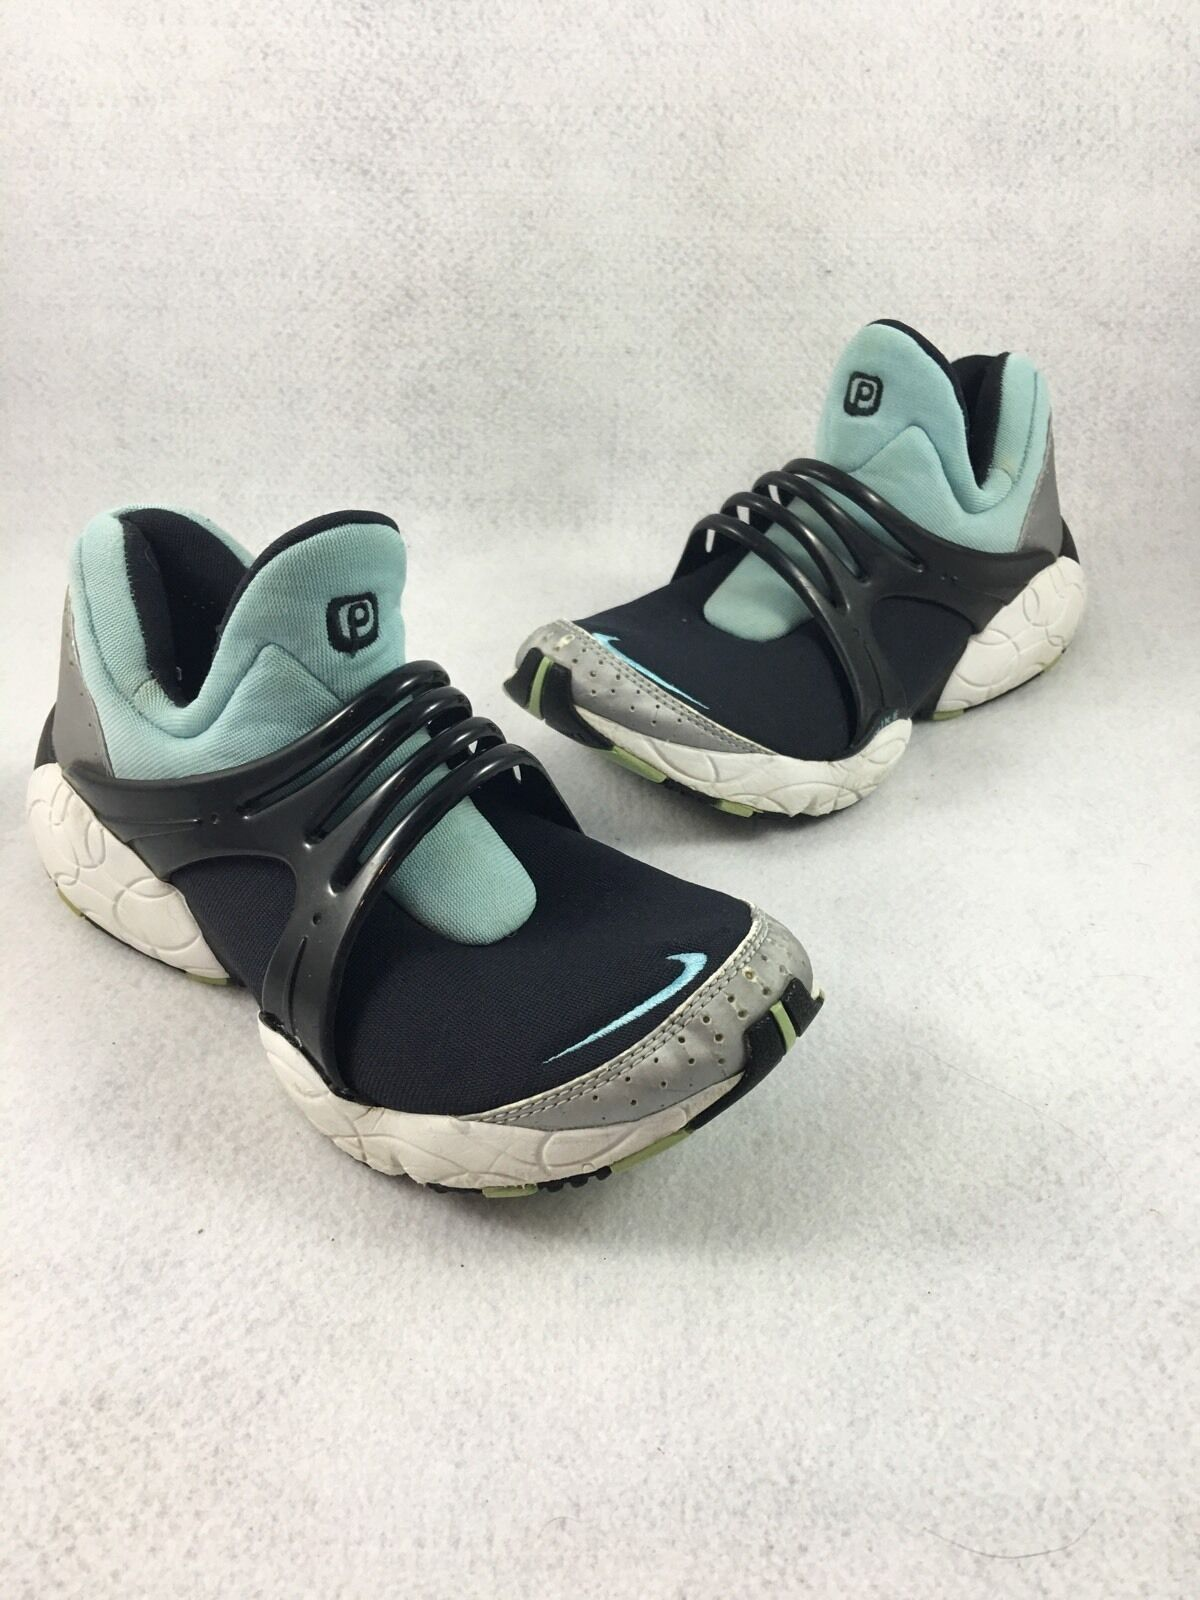 Nike Air Presto Cage Mens Size 7.5 Women's 9 Black And Teal 631035-041 / 010103